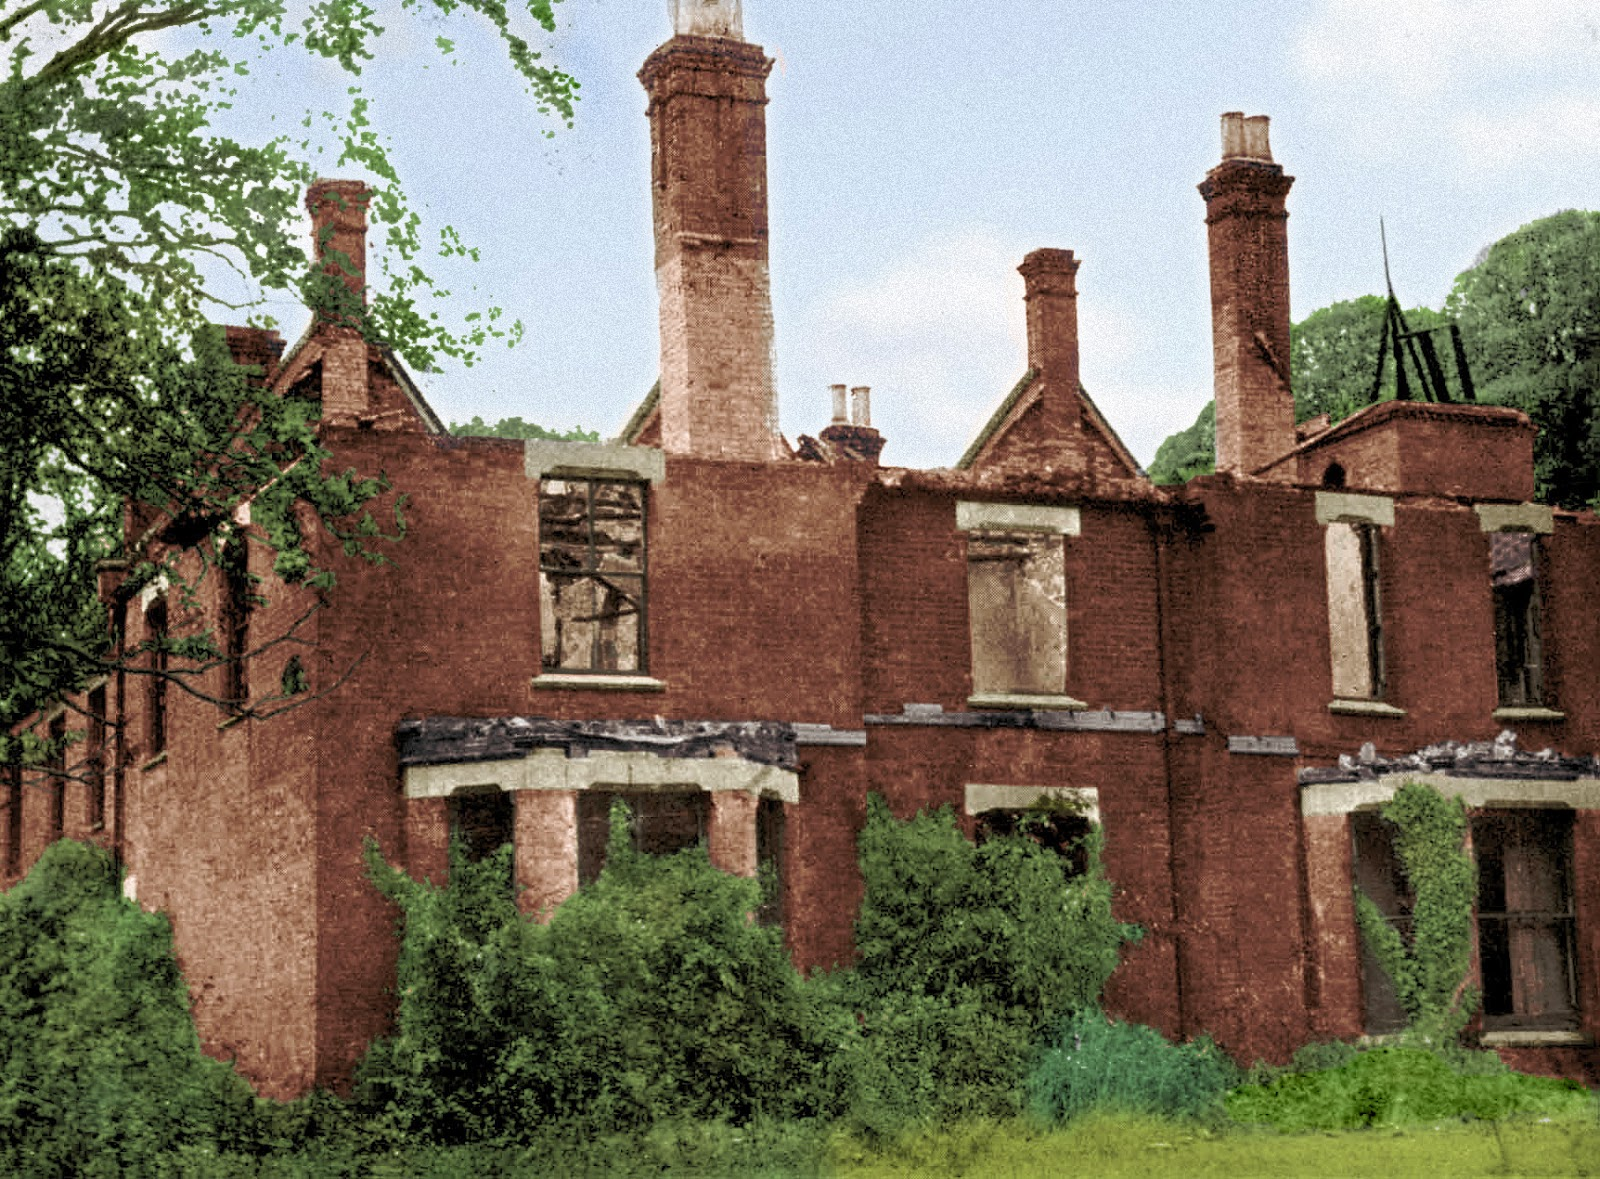 borley-rectory-mansion-essex